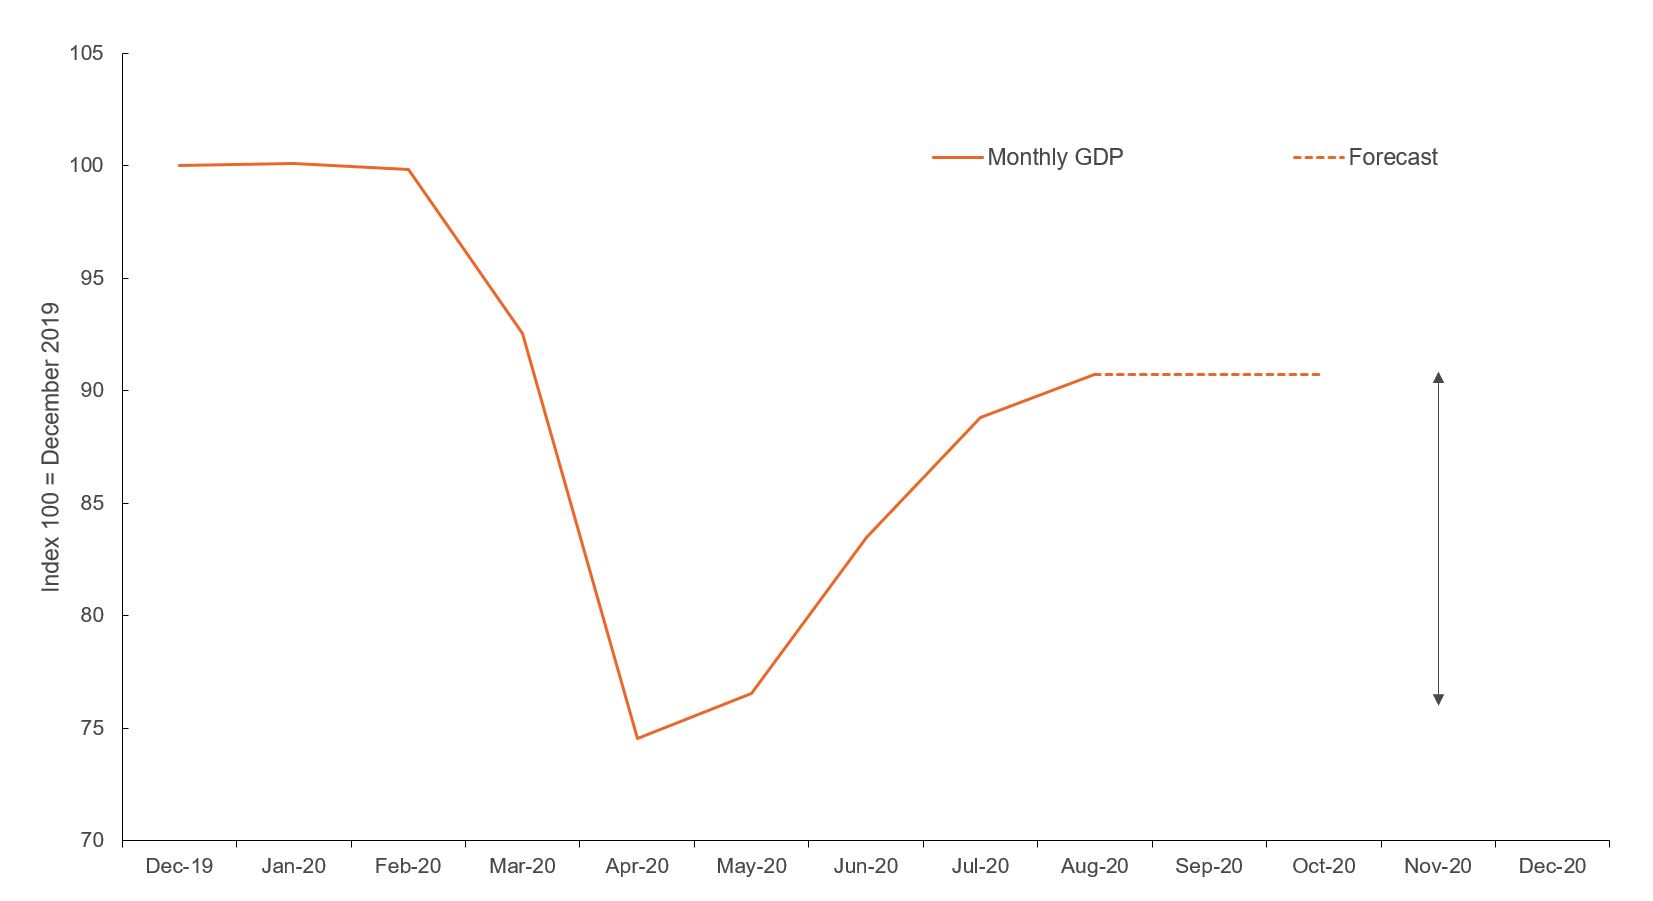 Figure showing monthly GDP